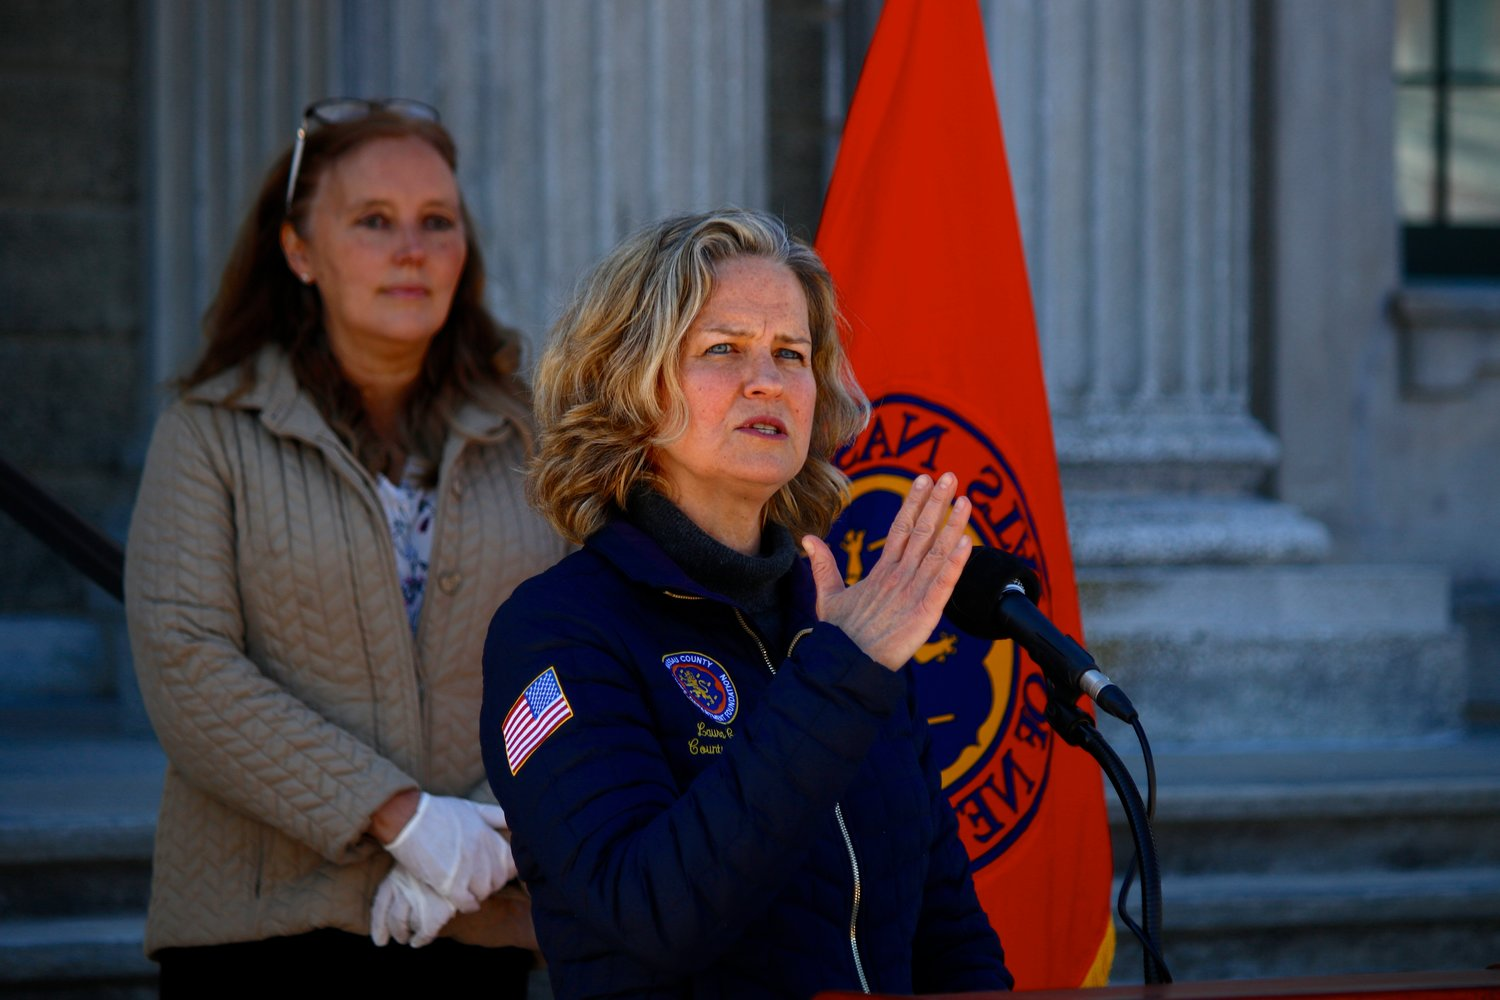 Nassau County Executive Laura Curran said Saturday afternoon that 149 people had died of the coronavirus in Nassau County to date. That contradicted a state report, which put the total number of deaths significantly higher than that, she said. At back was Nassau County Legislator Delia DeRiggi-Whitton, who represents the 11th District on the North Shore.